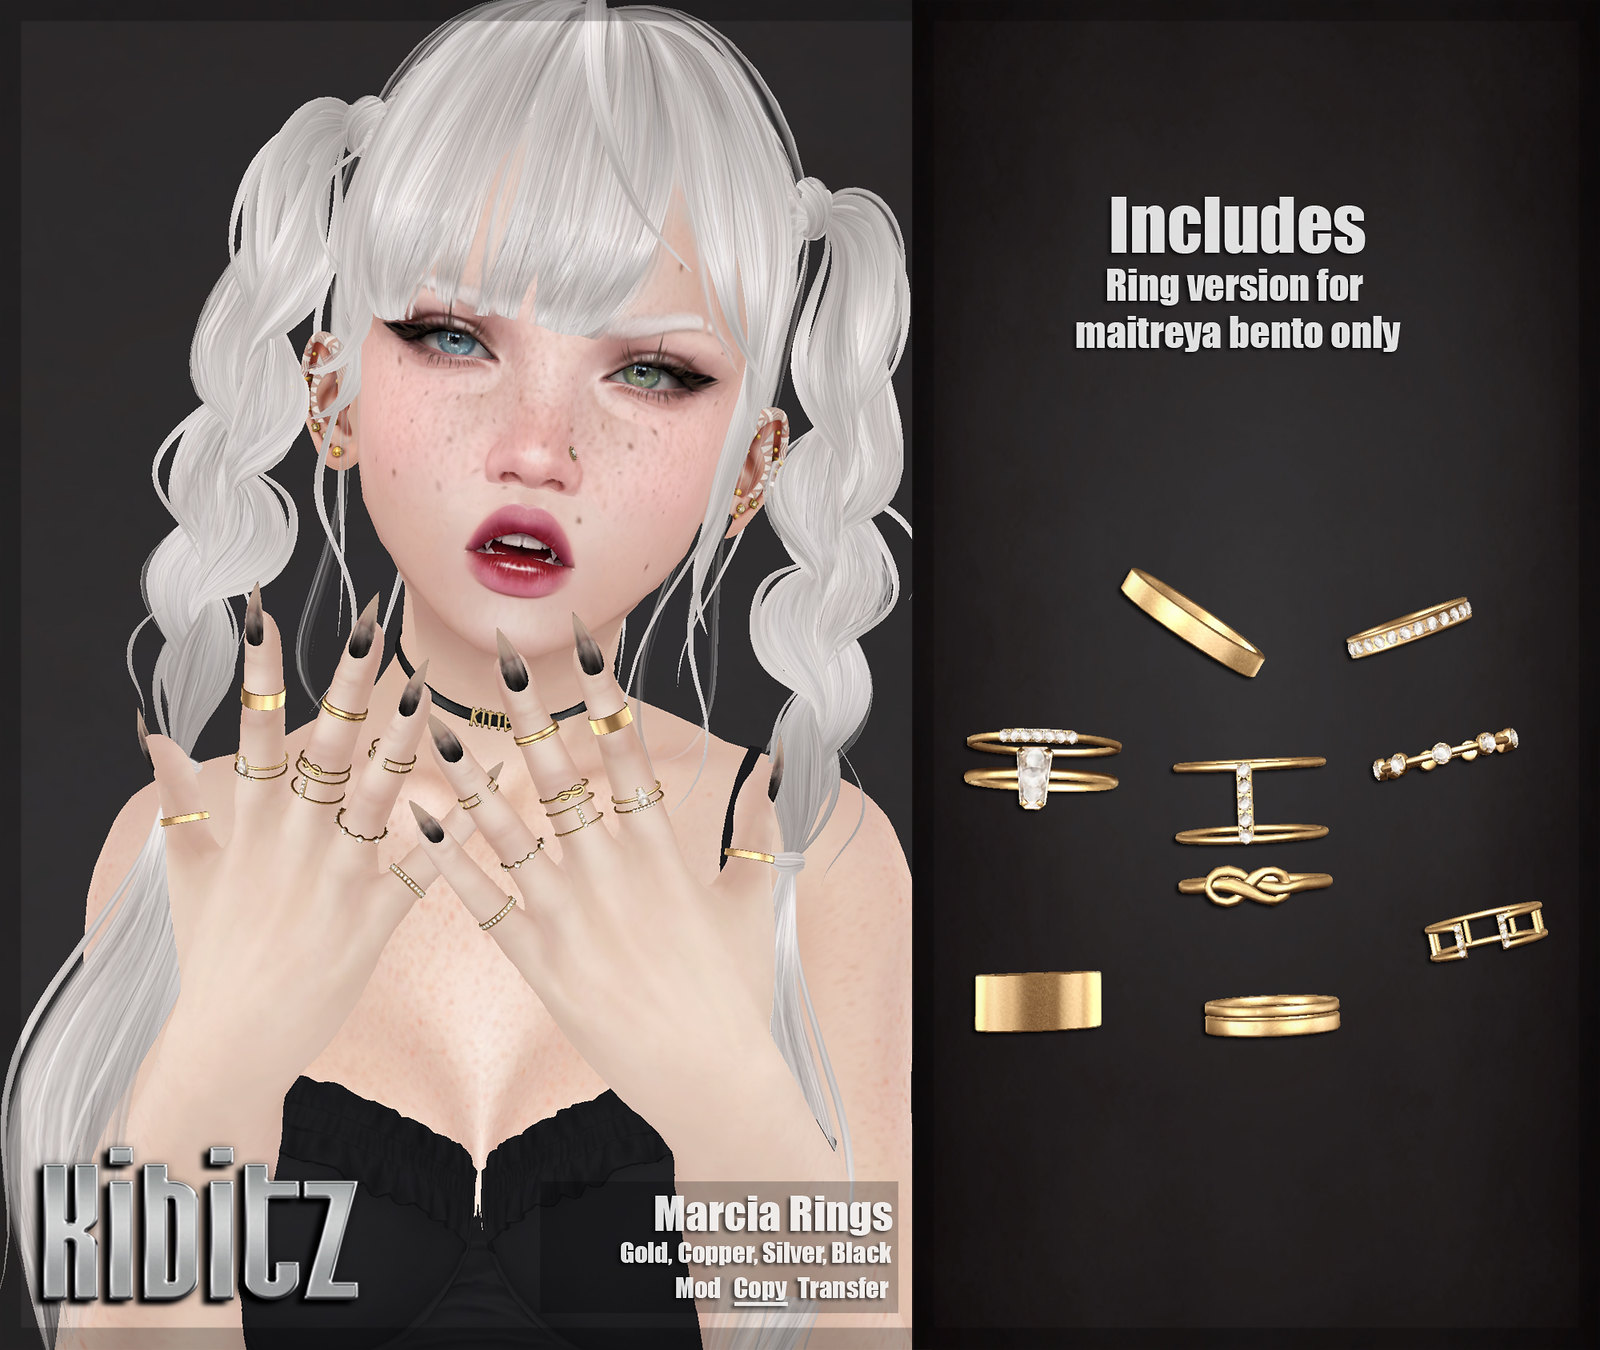 kibitz marcia rings vendor